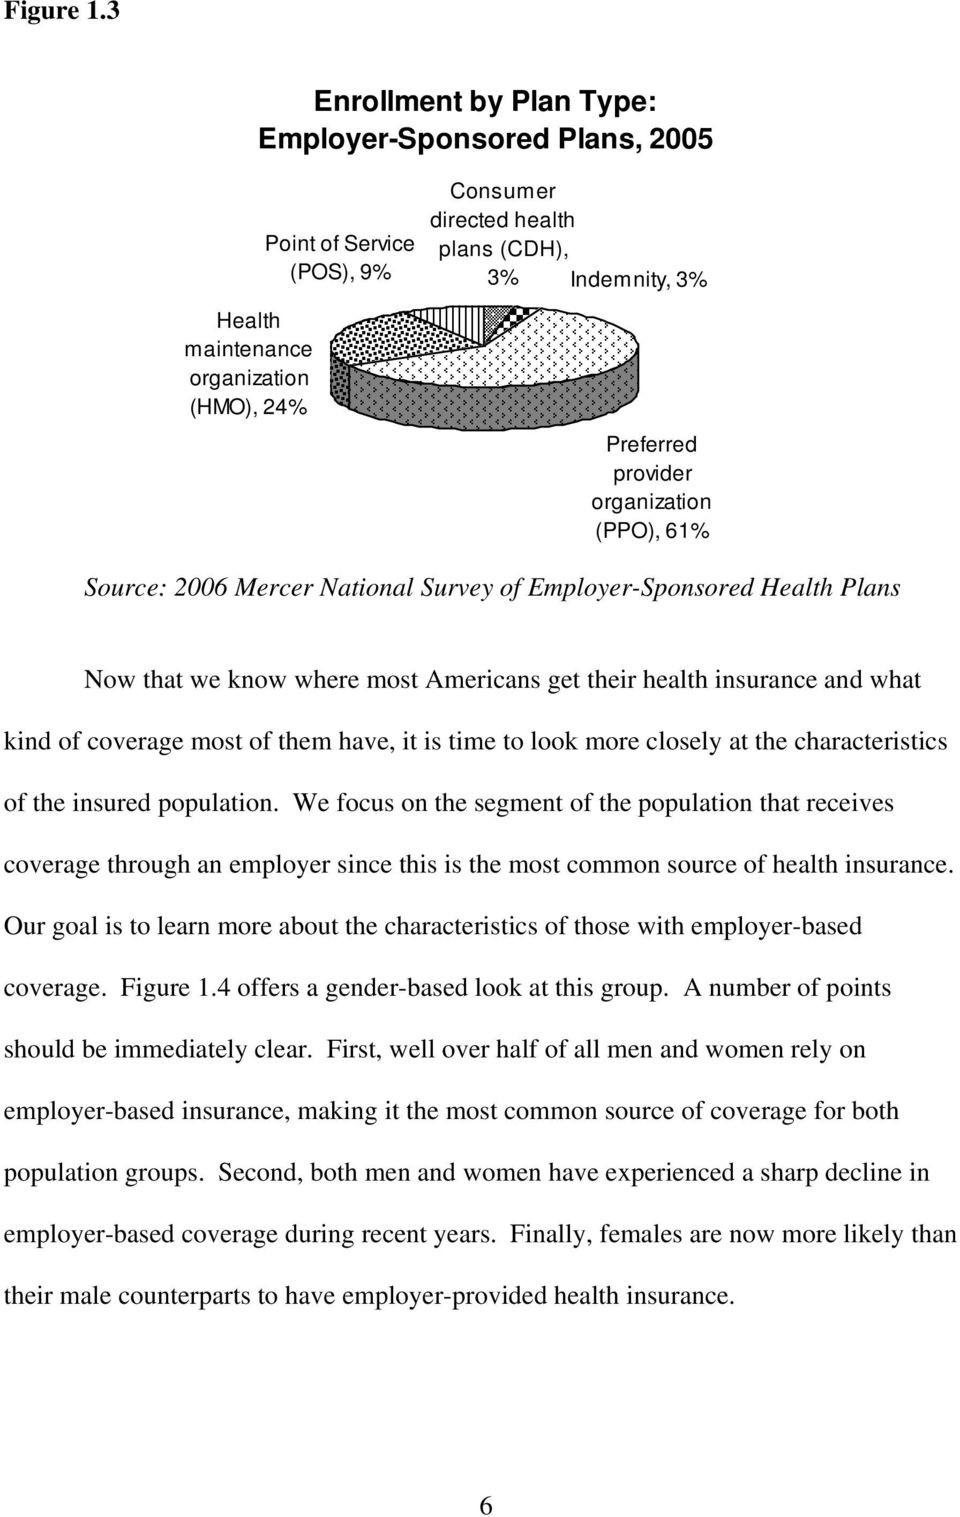 provider organization (PPO), 61% Source: 2006 Mercer National Survey of Employer-Sponsored Health Plans Now that we know where most Americans get their health insurance and what kind of coverage most